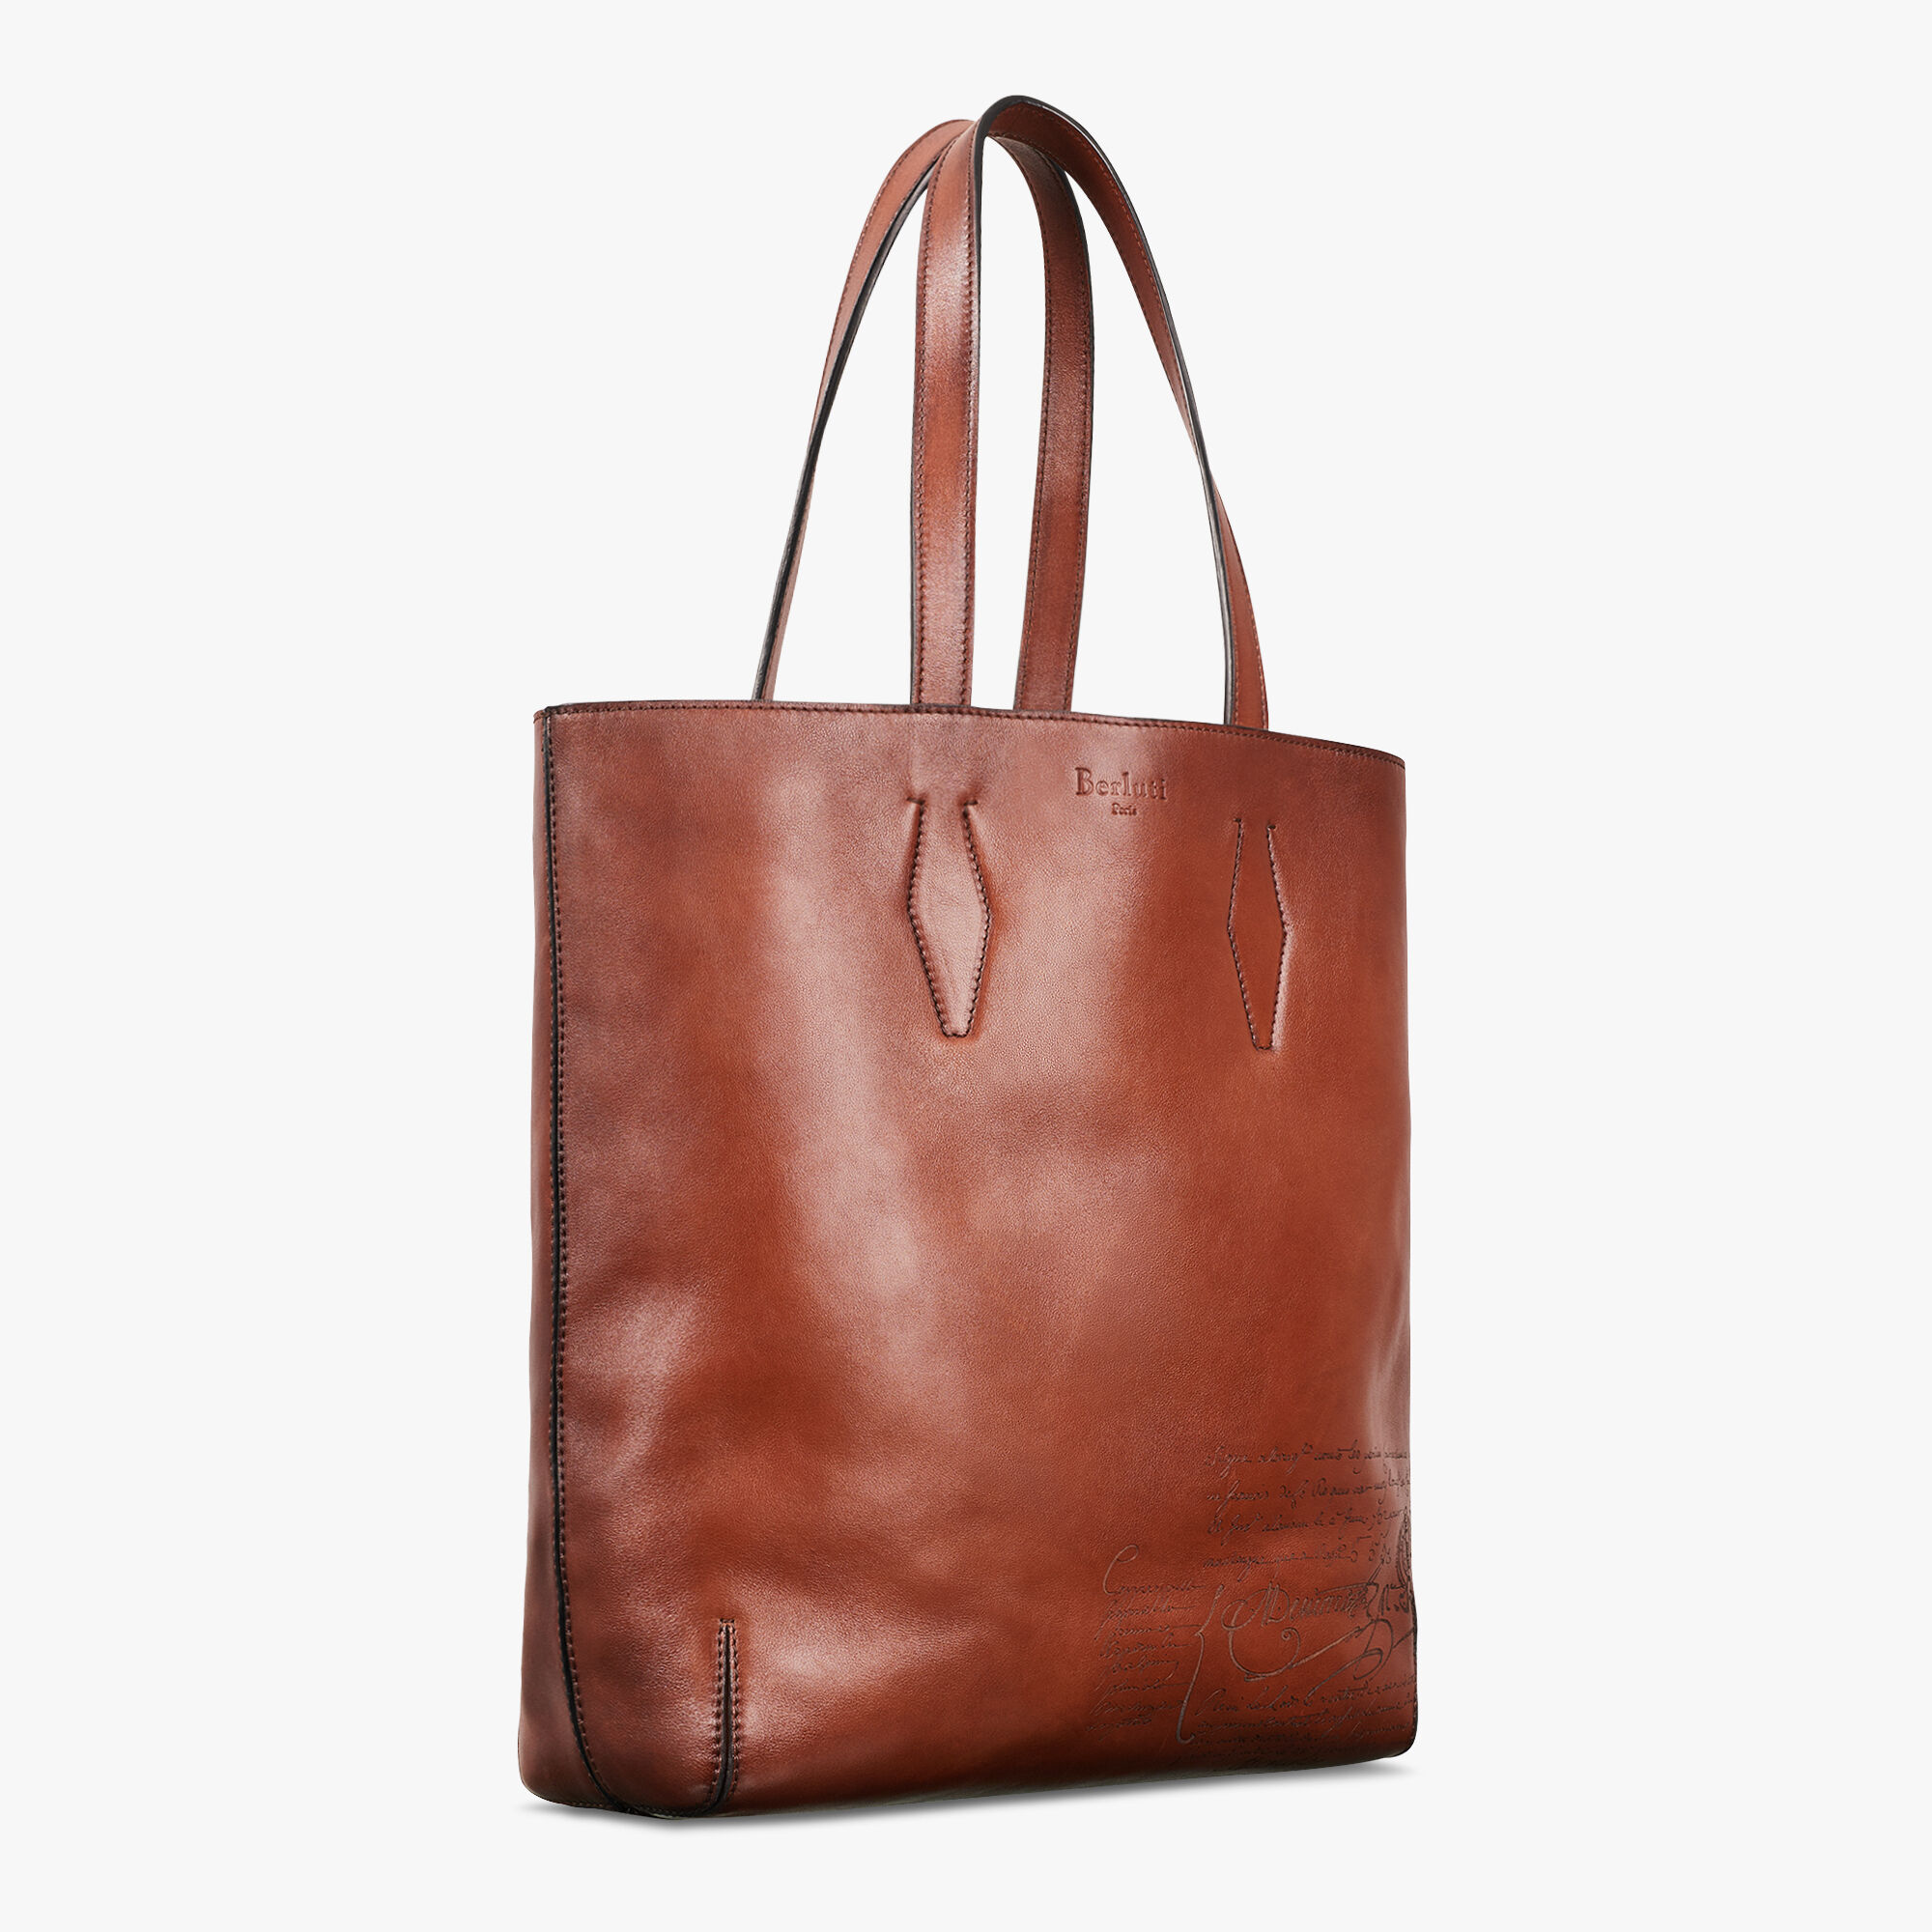 Esquisse leather tote Berluti